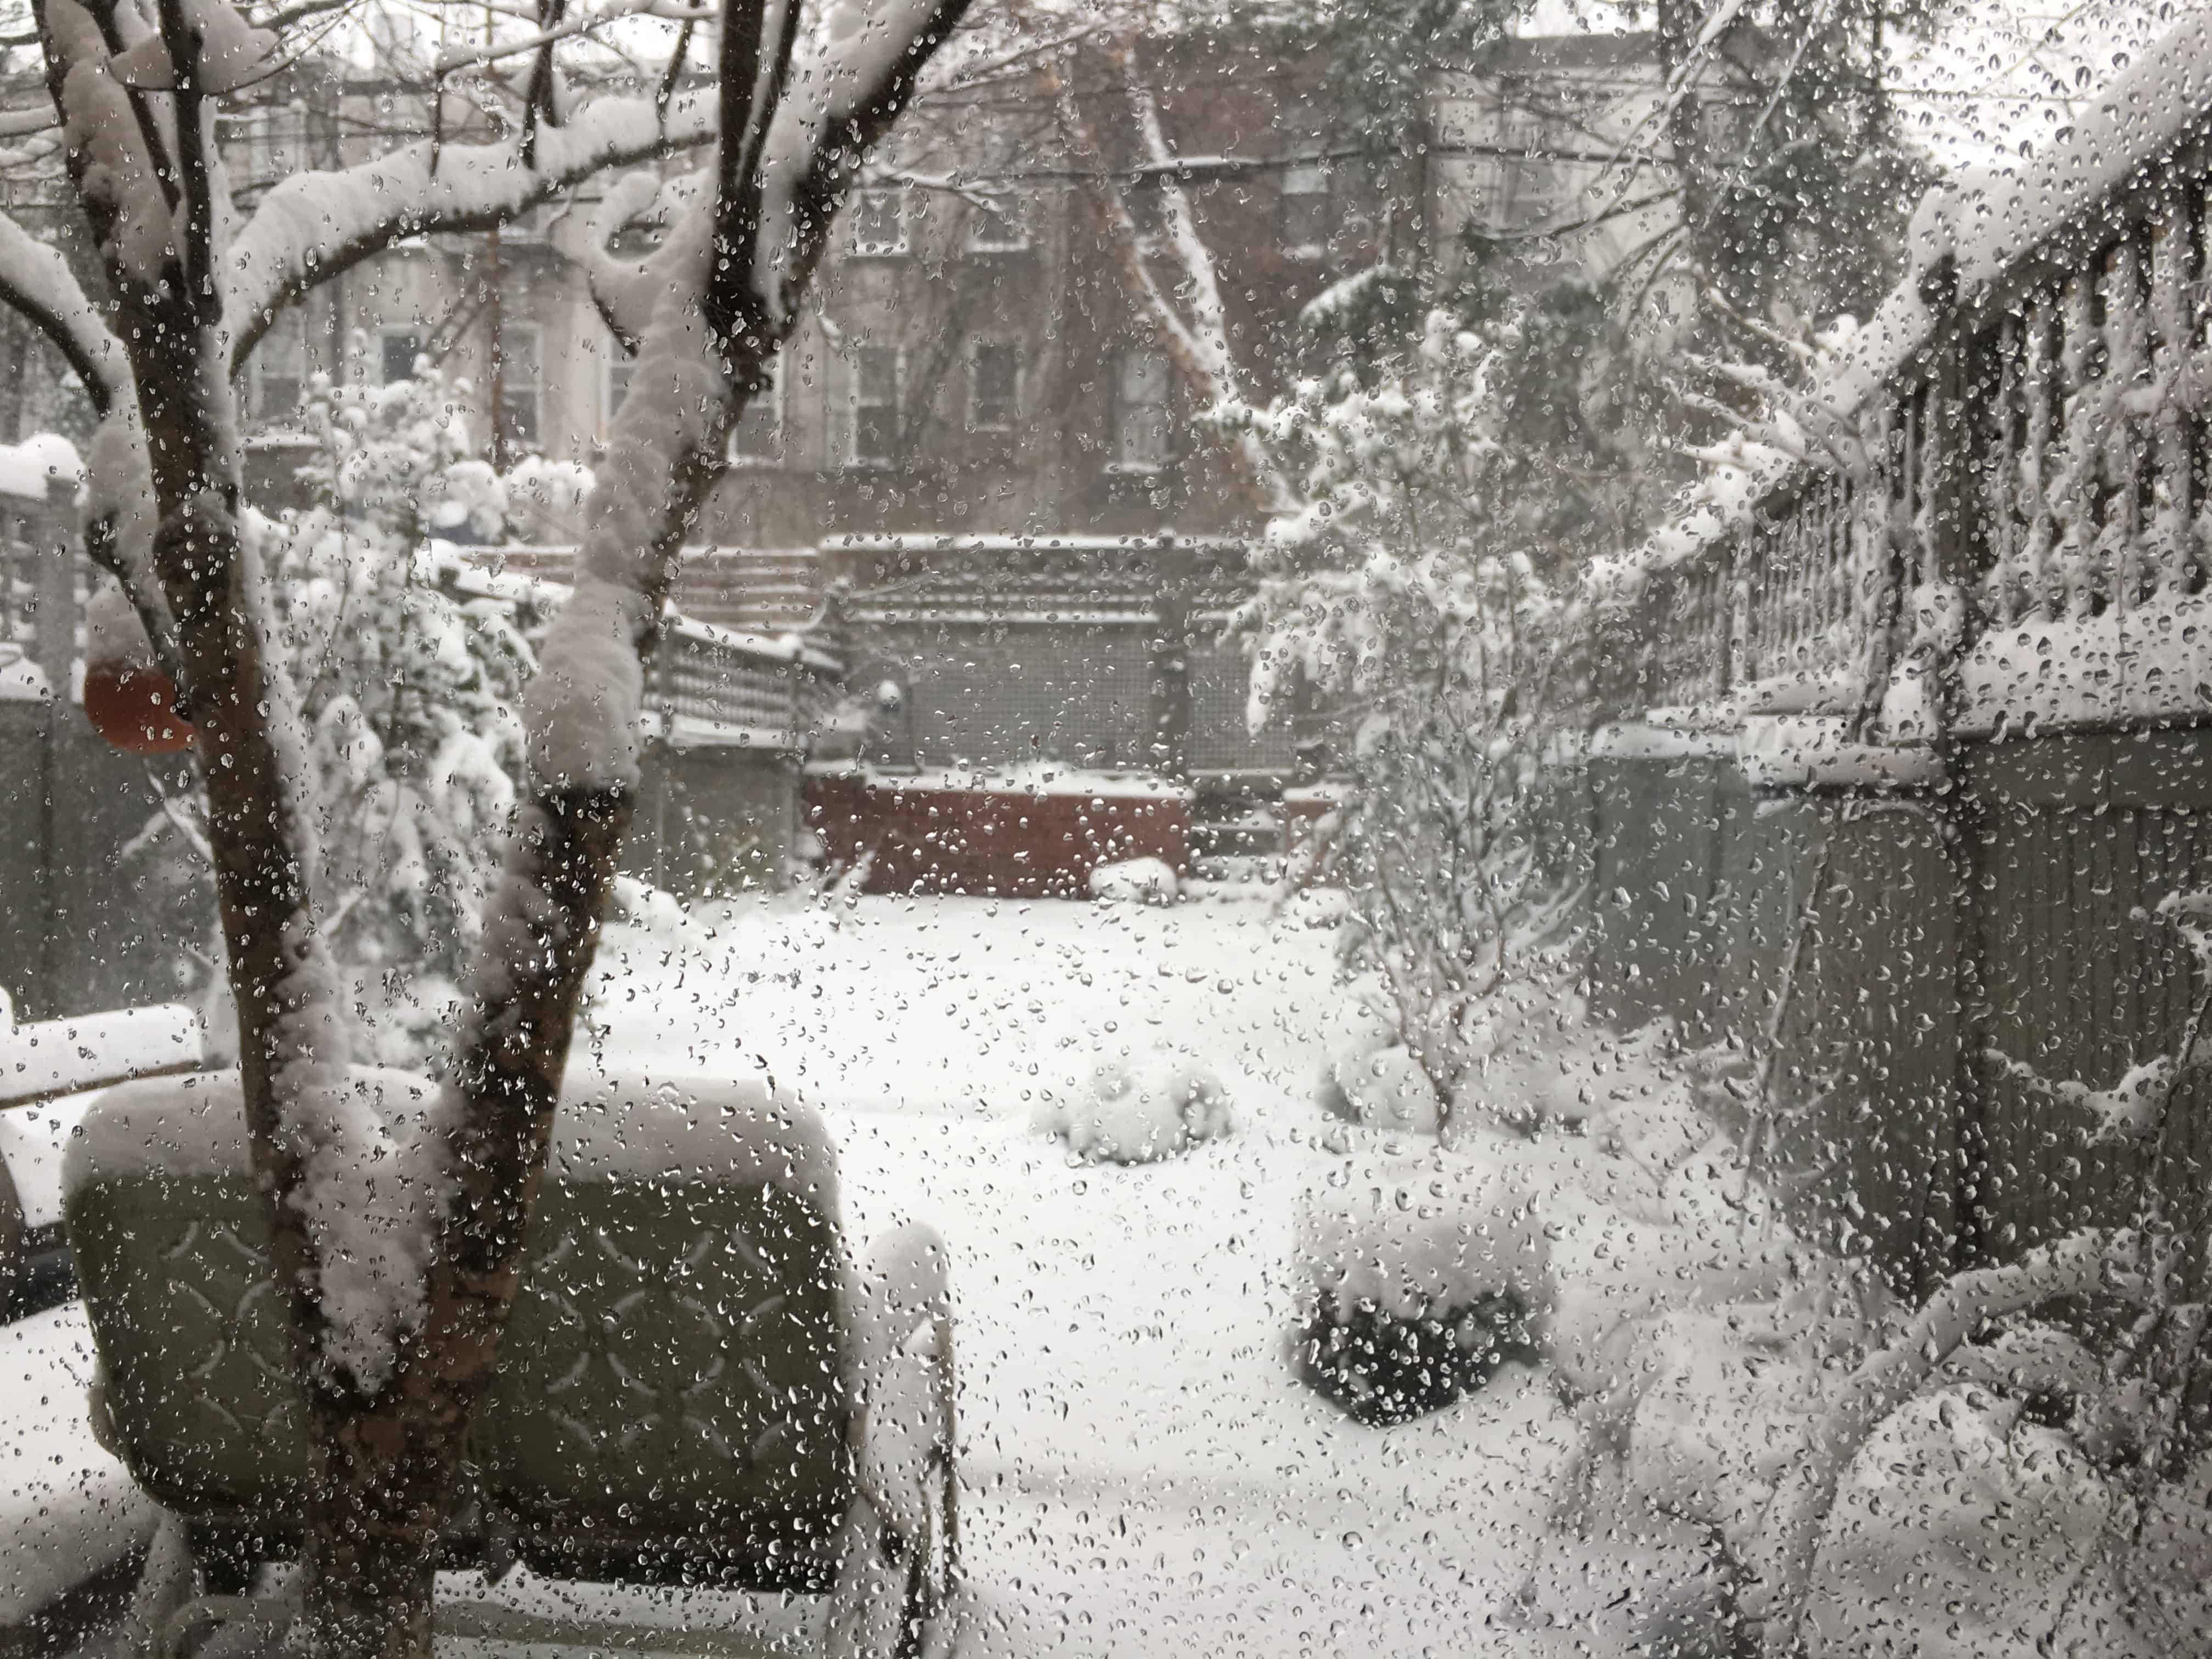 My backyard in the snowstorm.